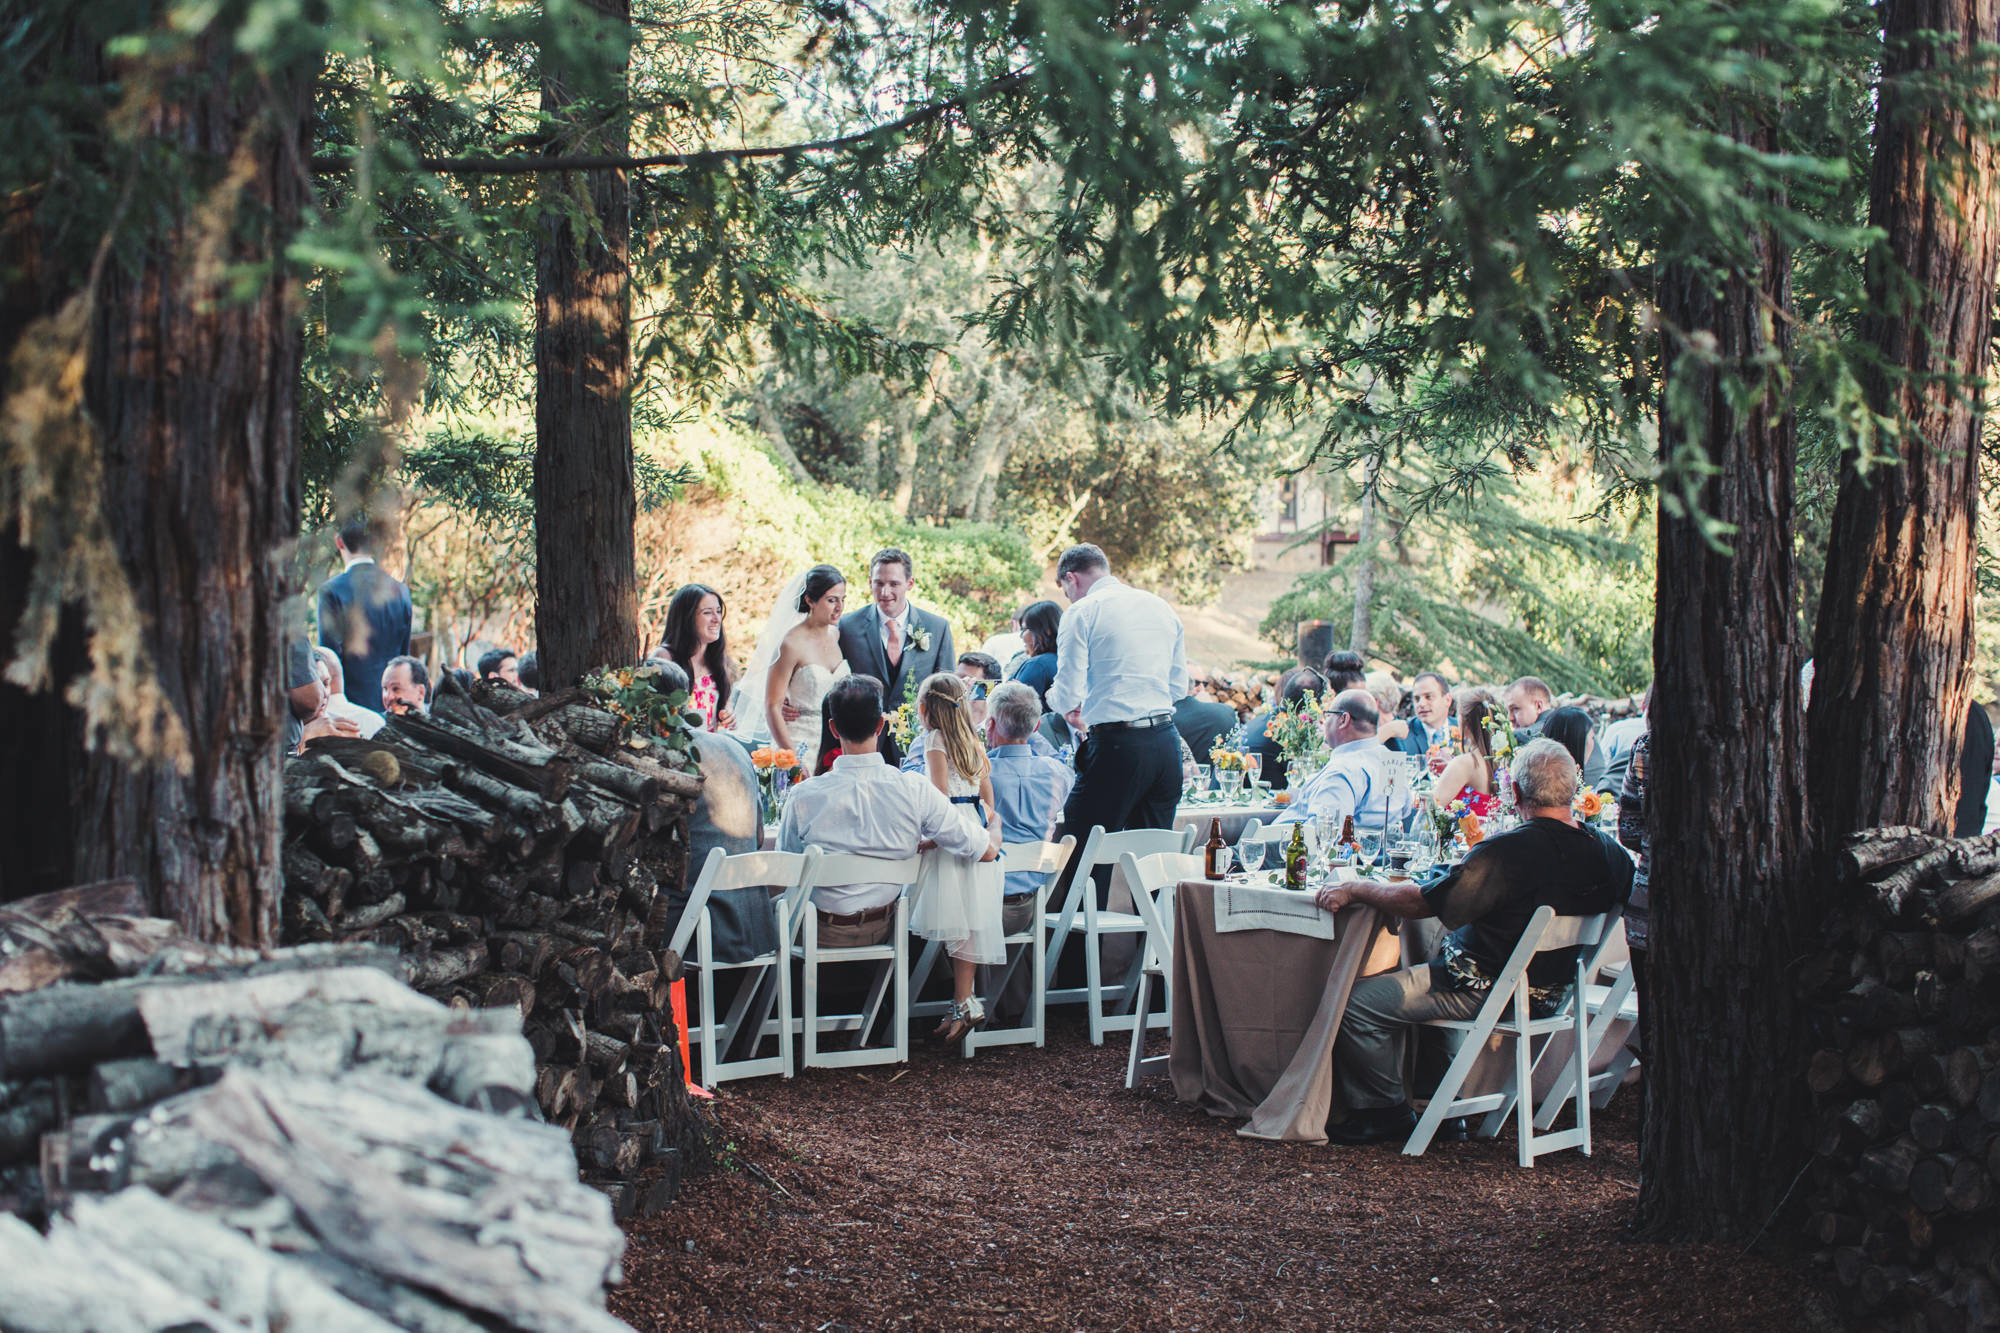 Backyard Wedding in California©Anne-Claire Brun 0031